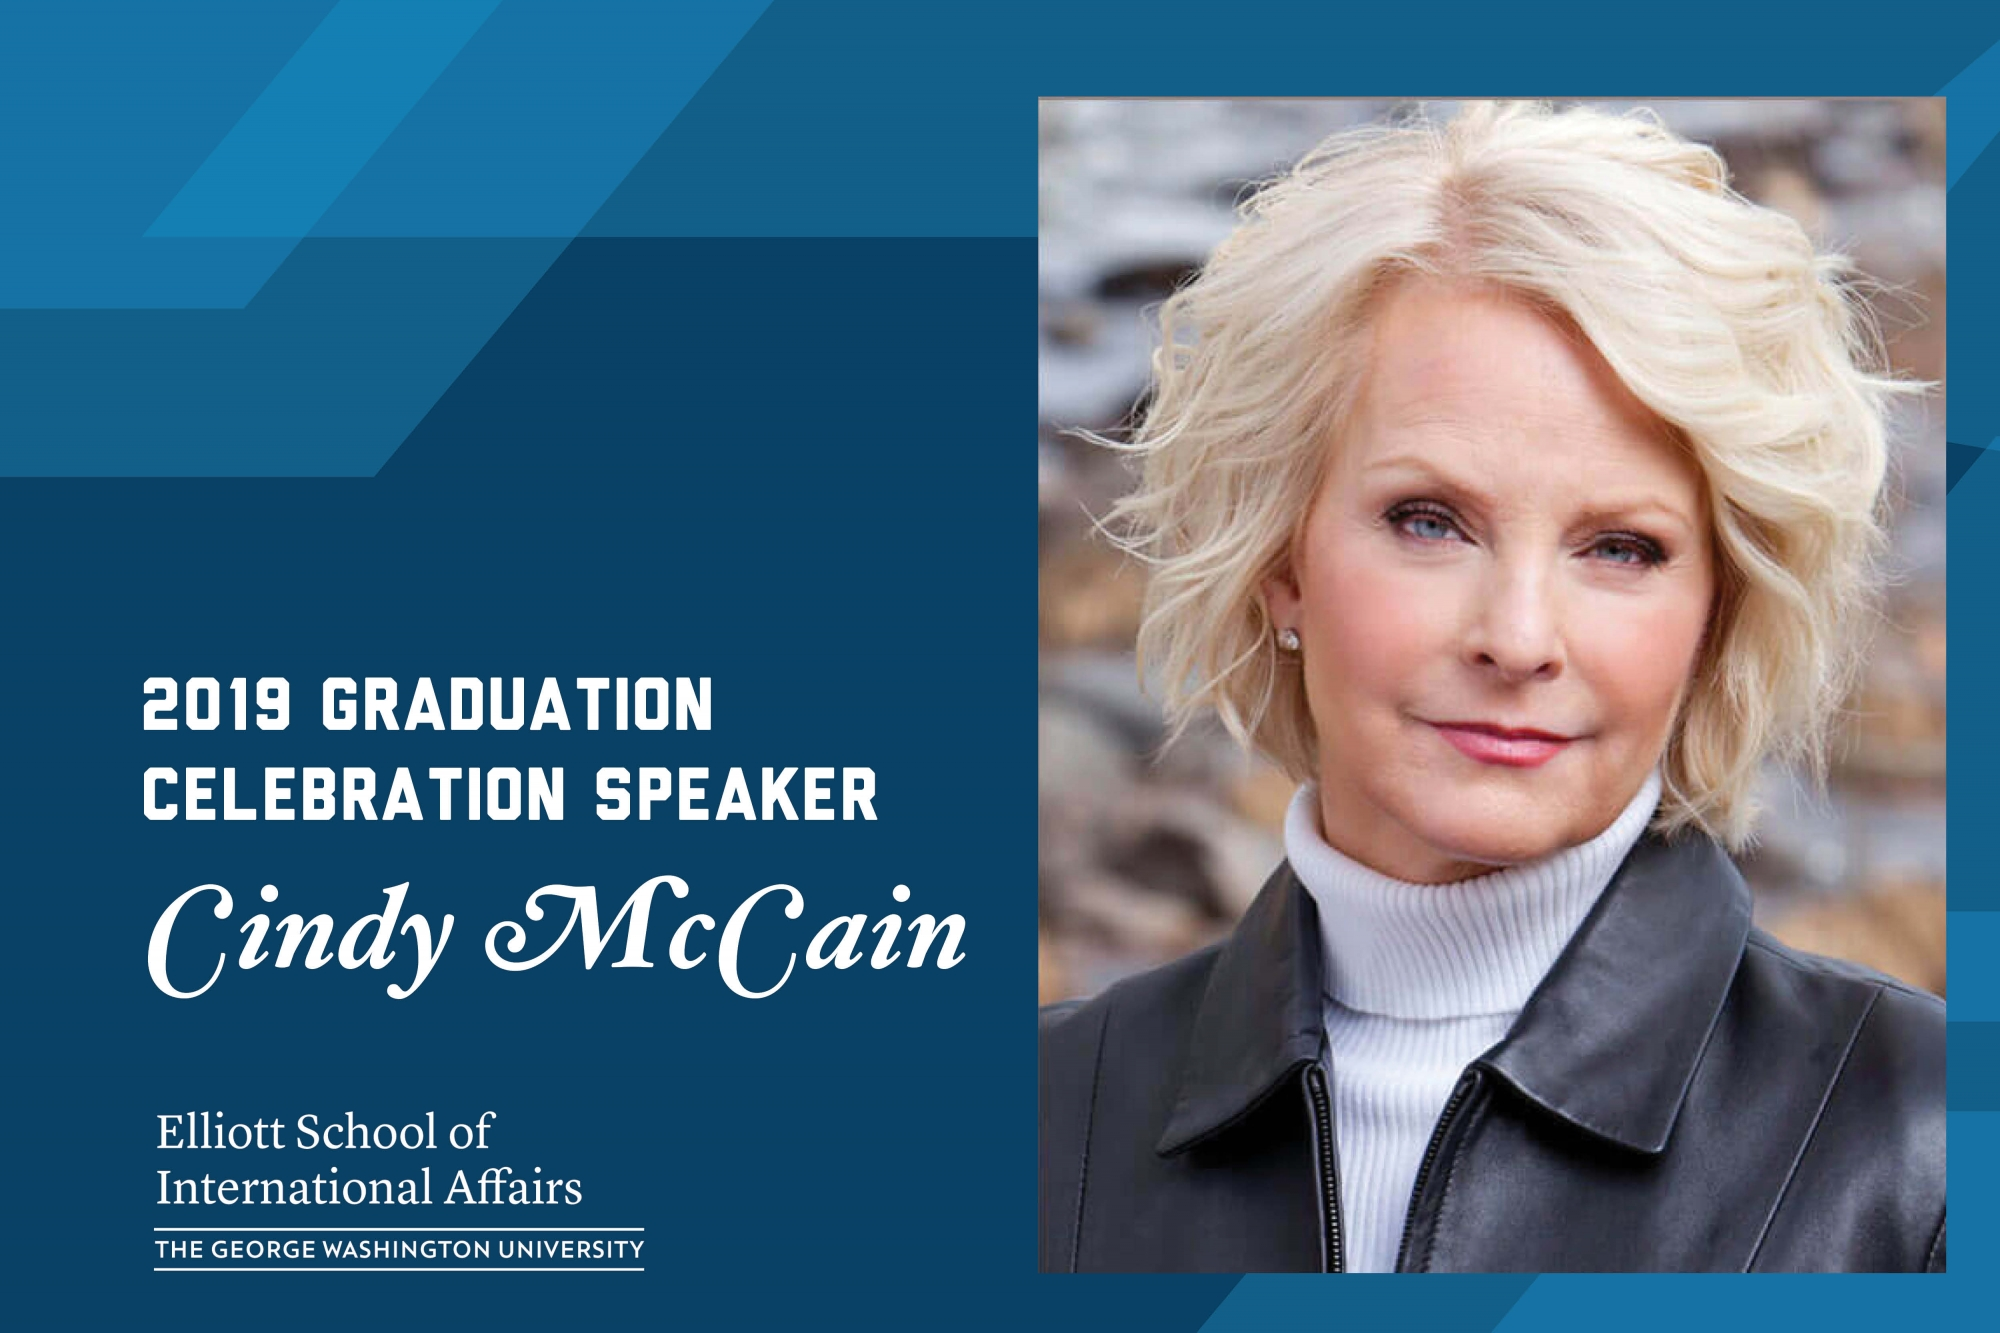 Photo: Cindy McCain announced as 2019 Graduation Celebration speaker